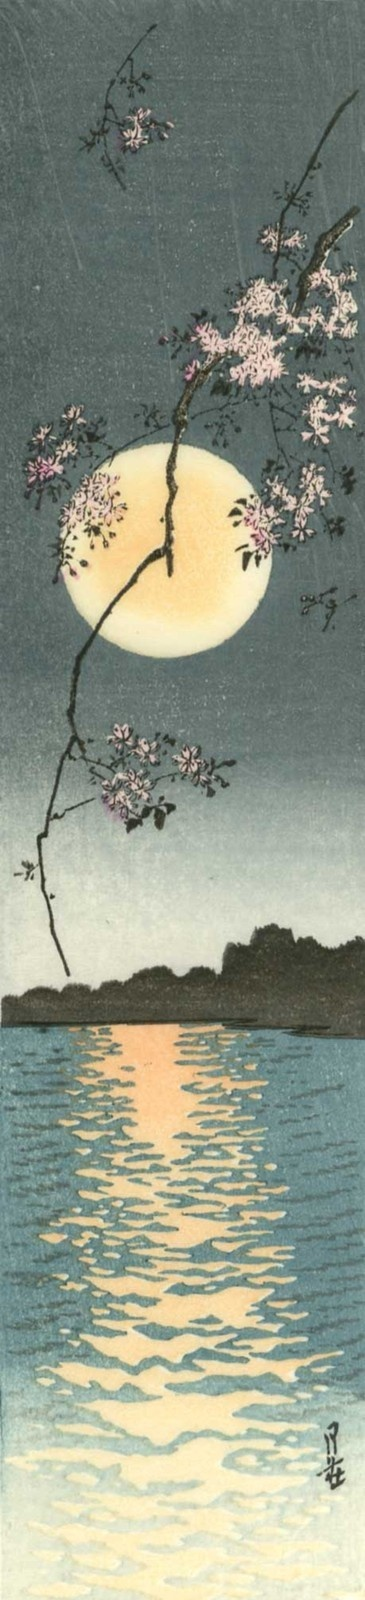 Gesso Yoshimoto Japanese Woodblock Print Blossoms and Full Moon | eBay